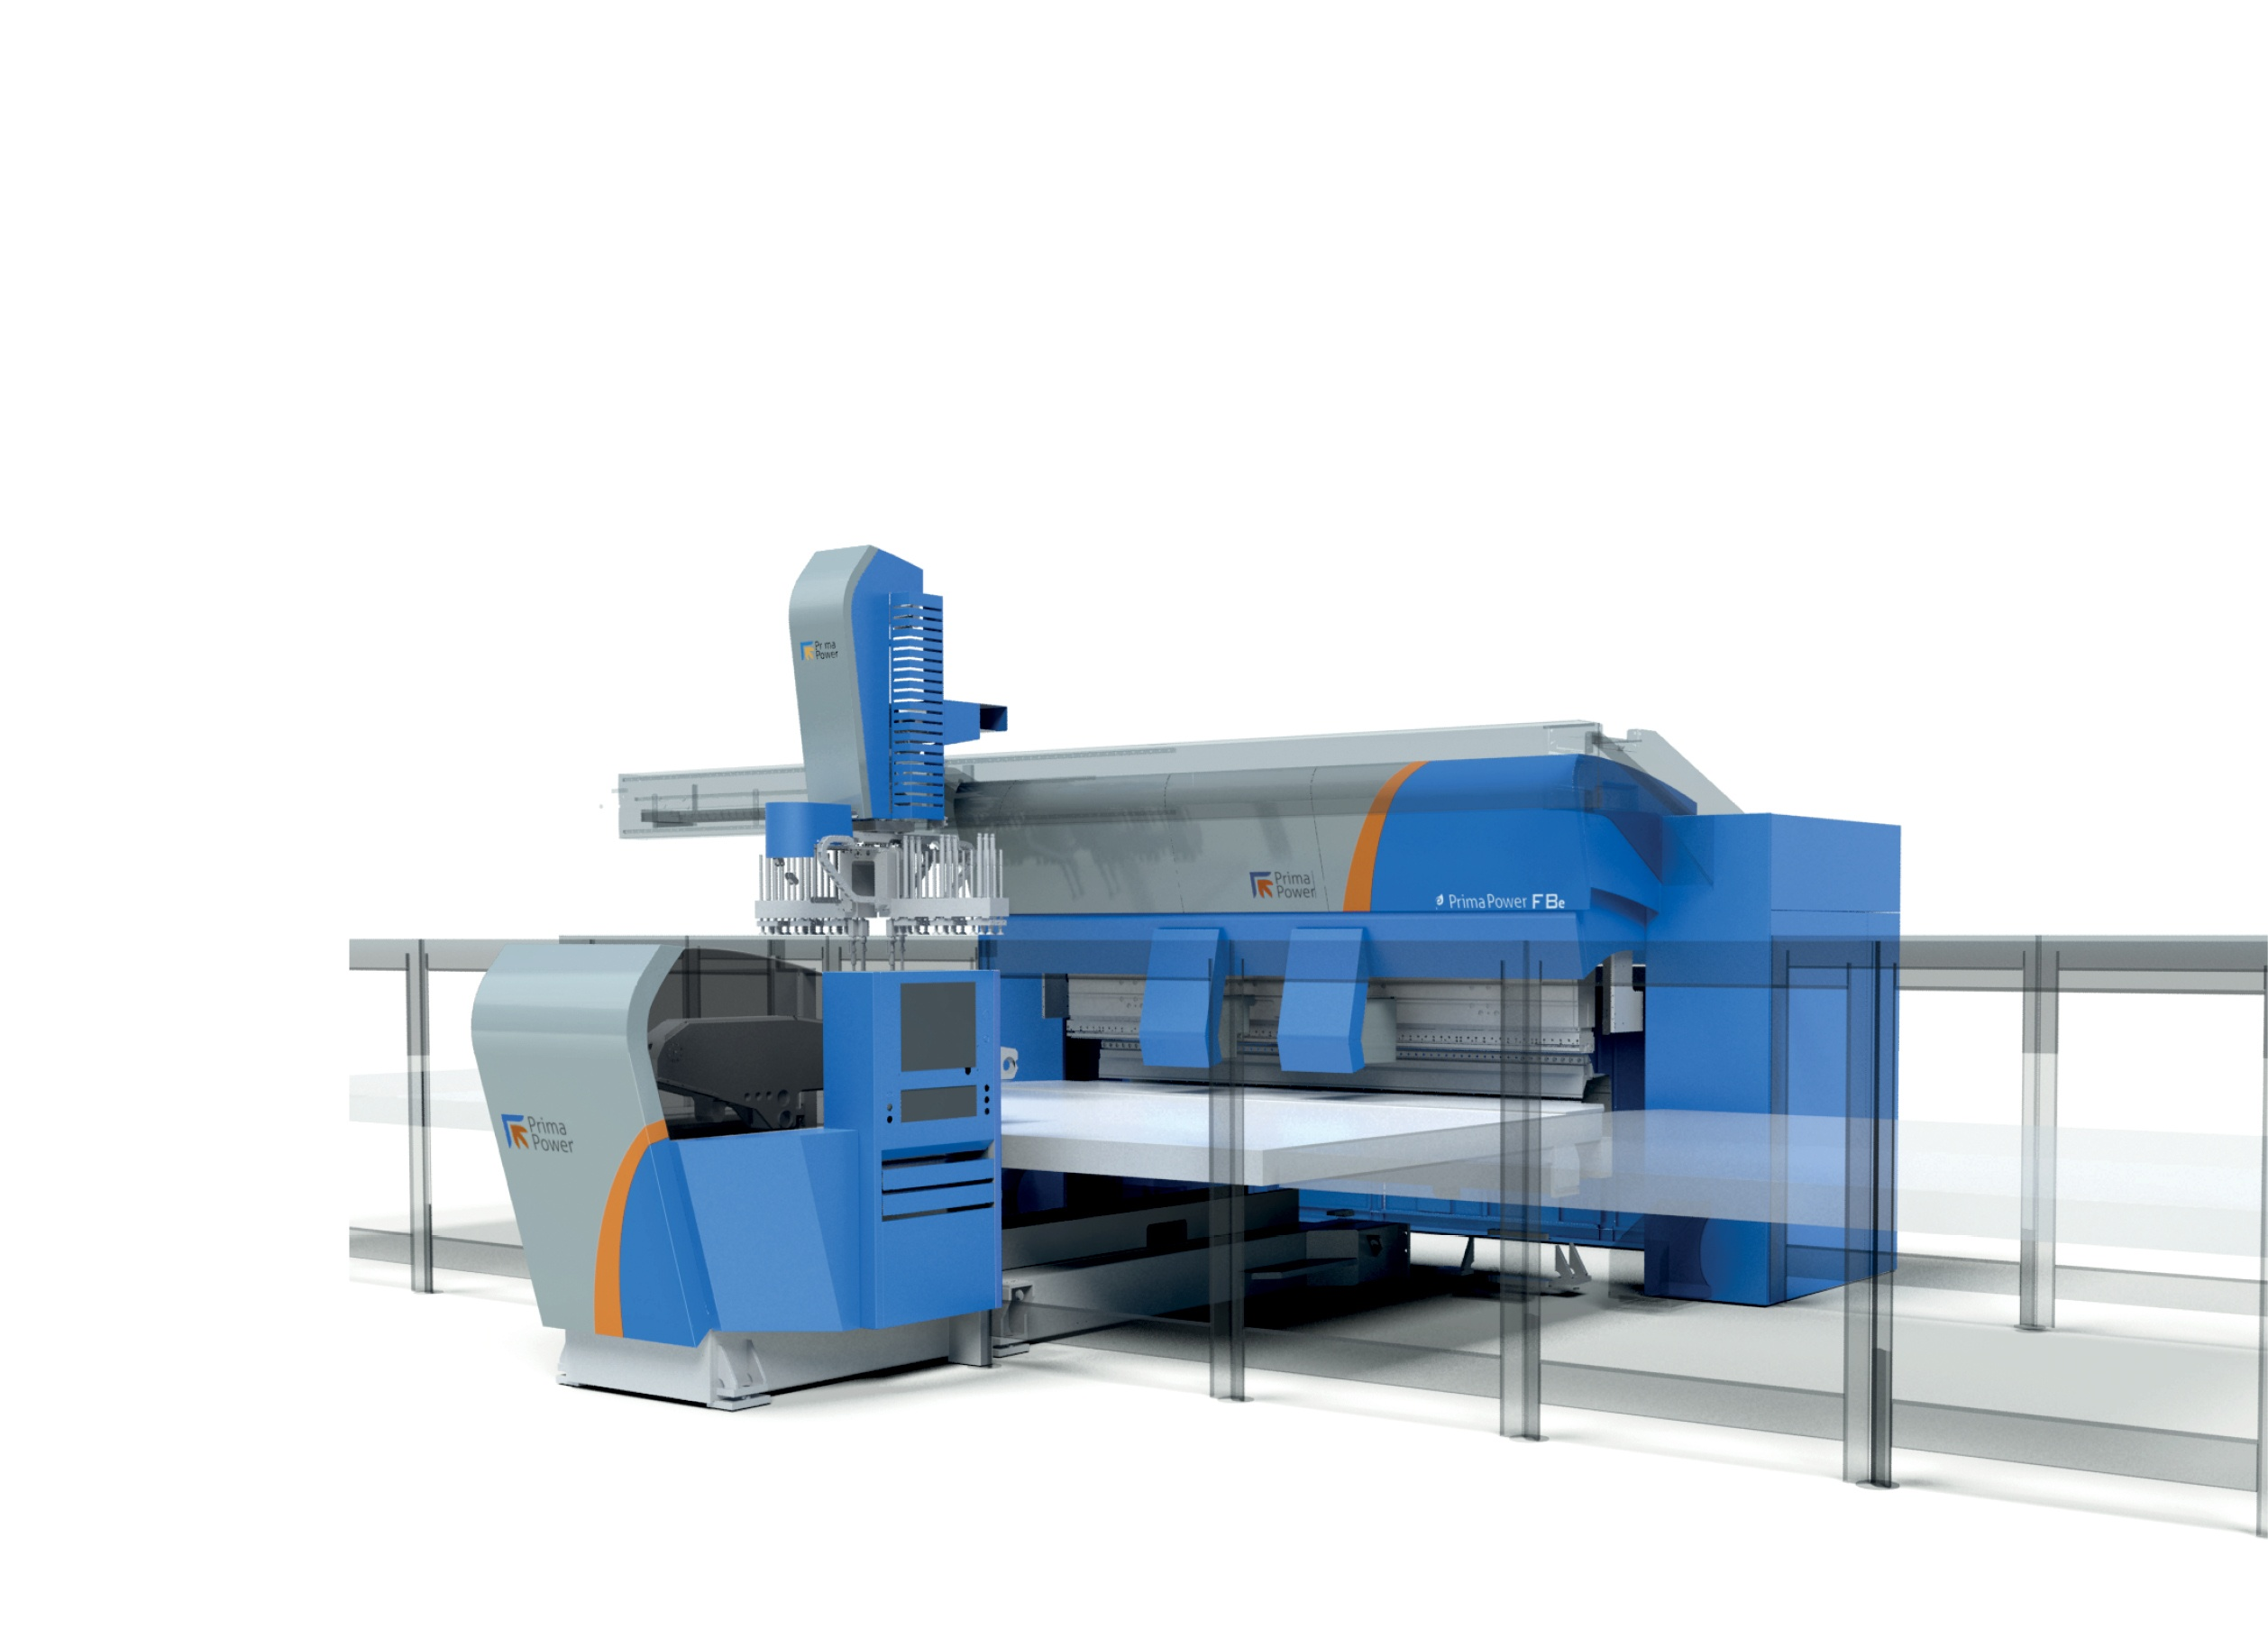 Bending machine body design, protection design PrimaPower